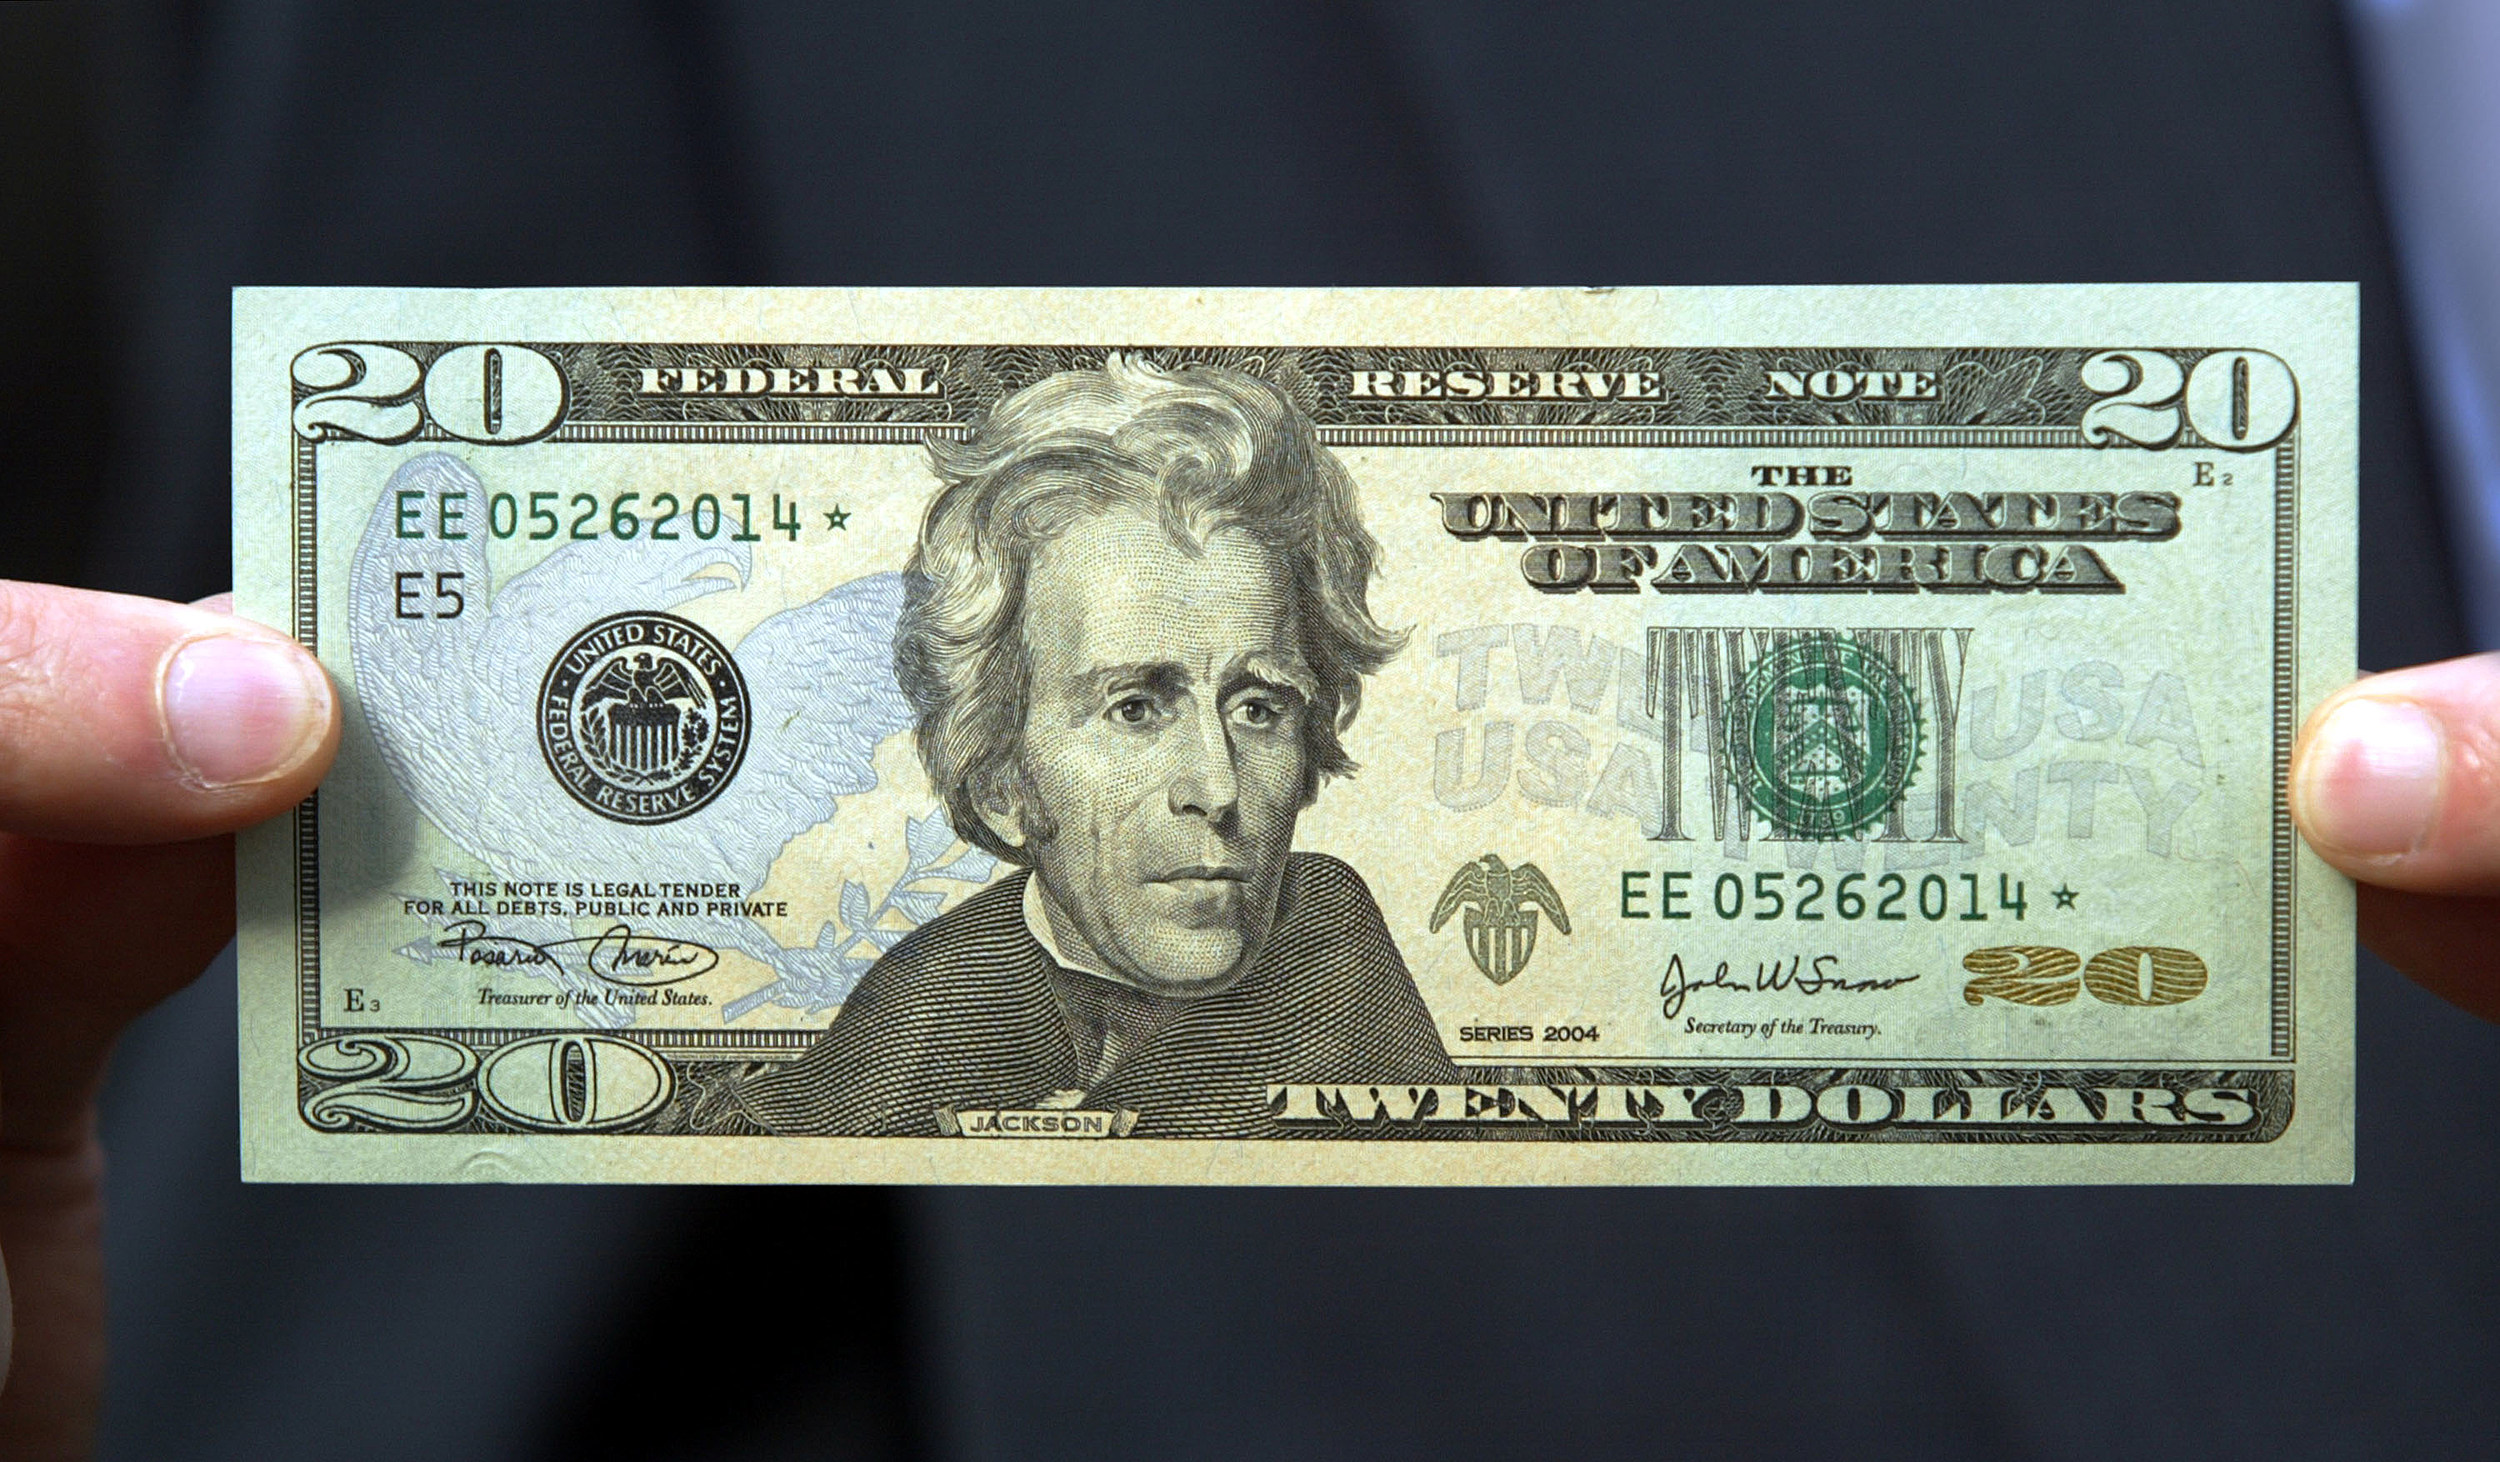 Newly Redesigned 20 Dollar Bill unveiled in Washington